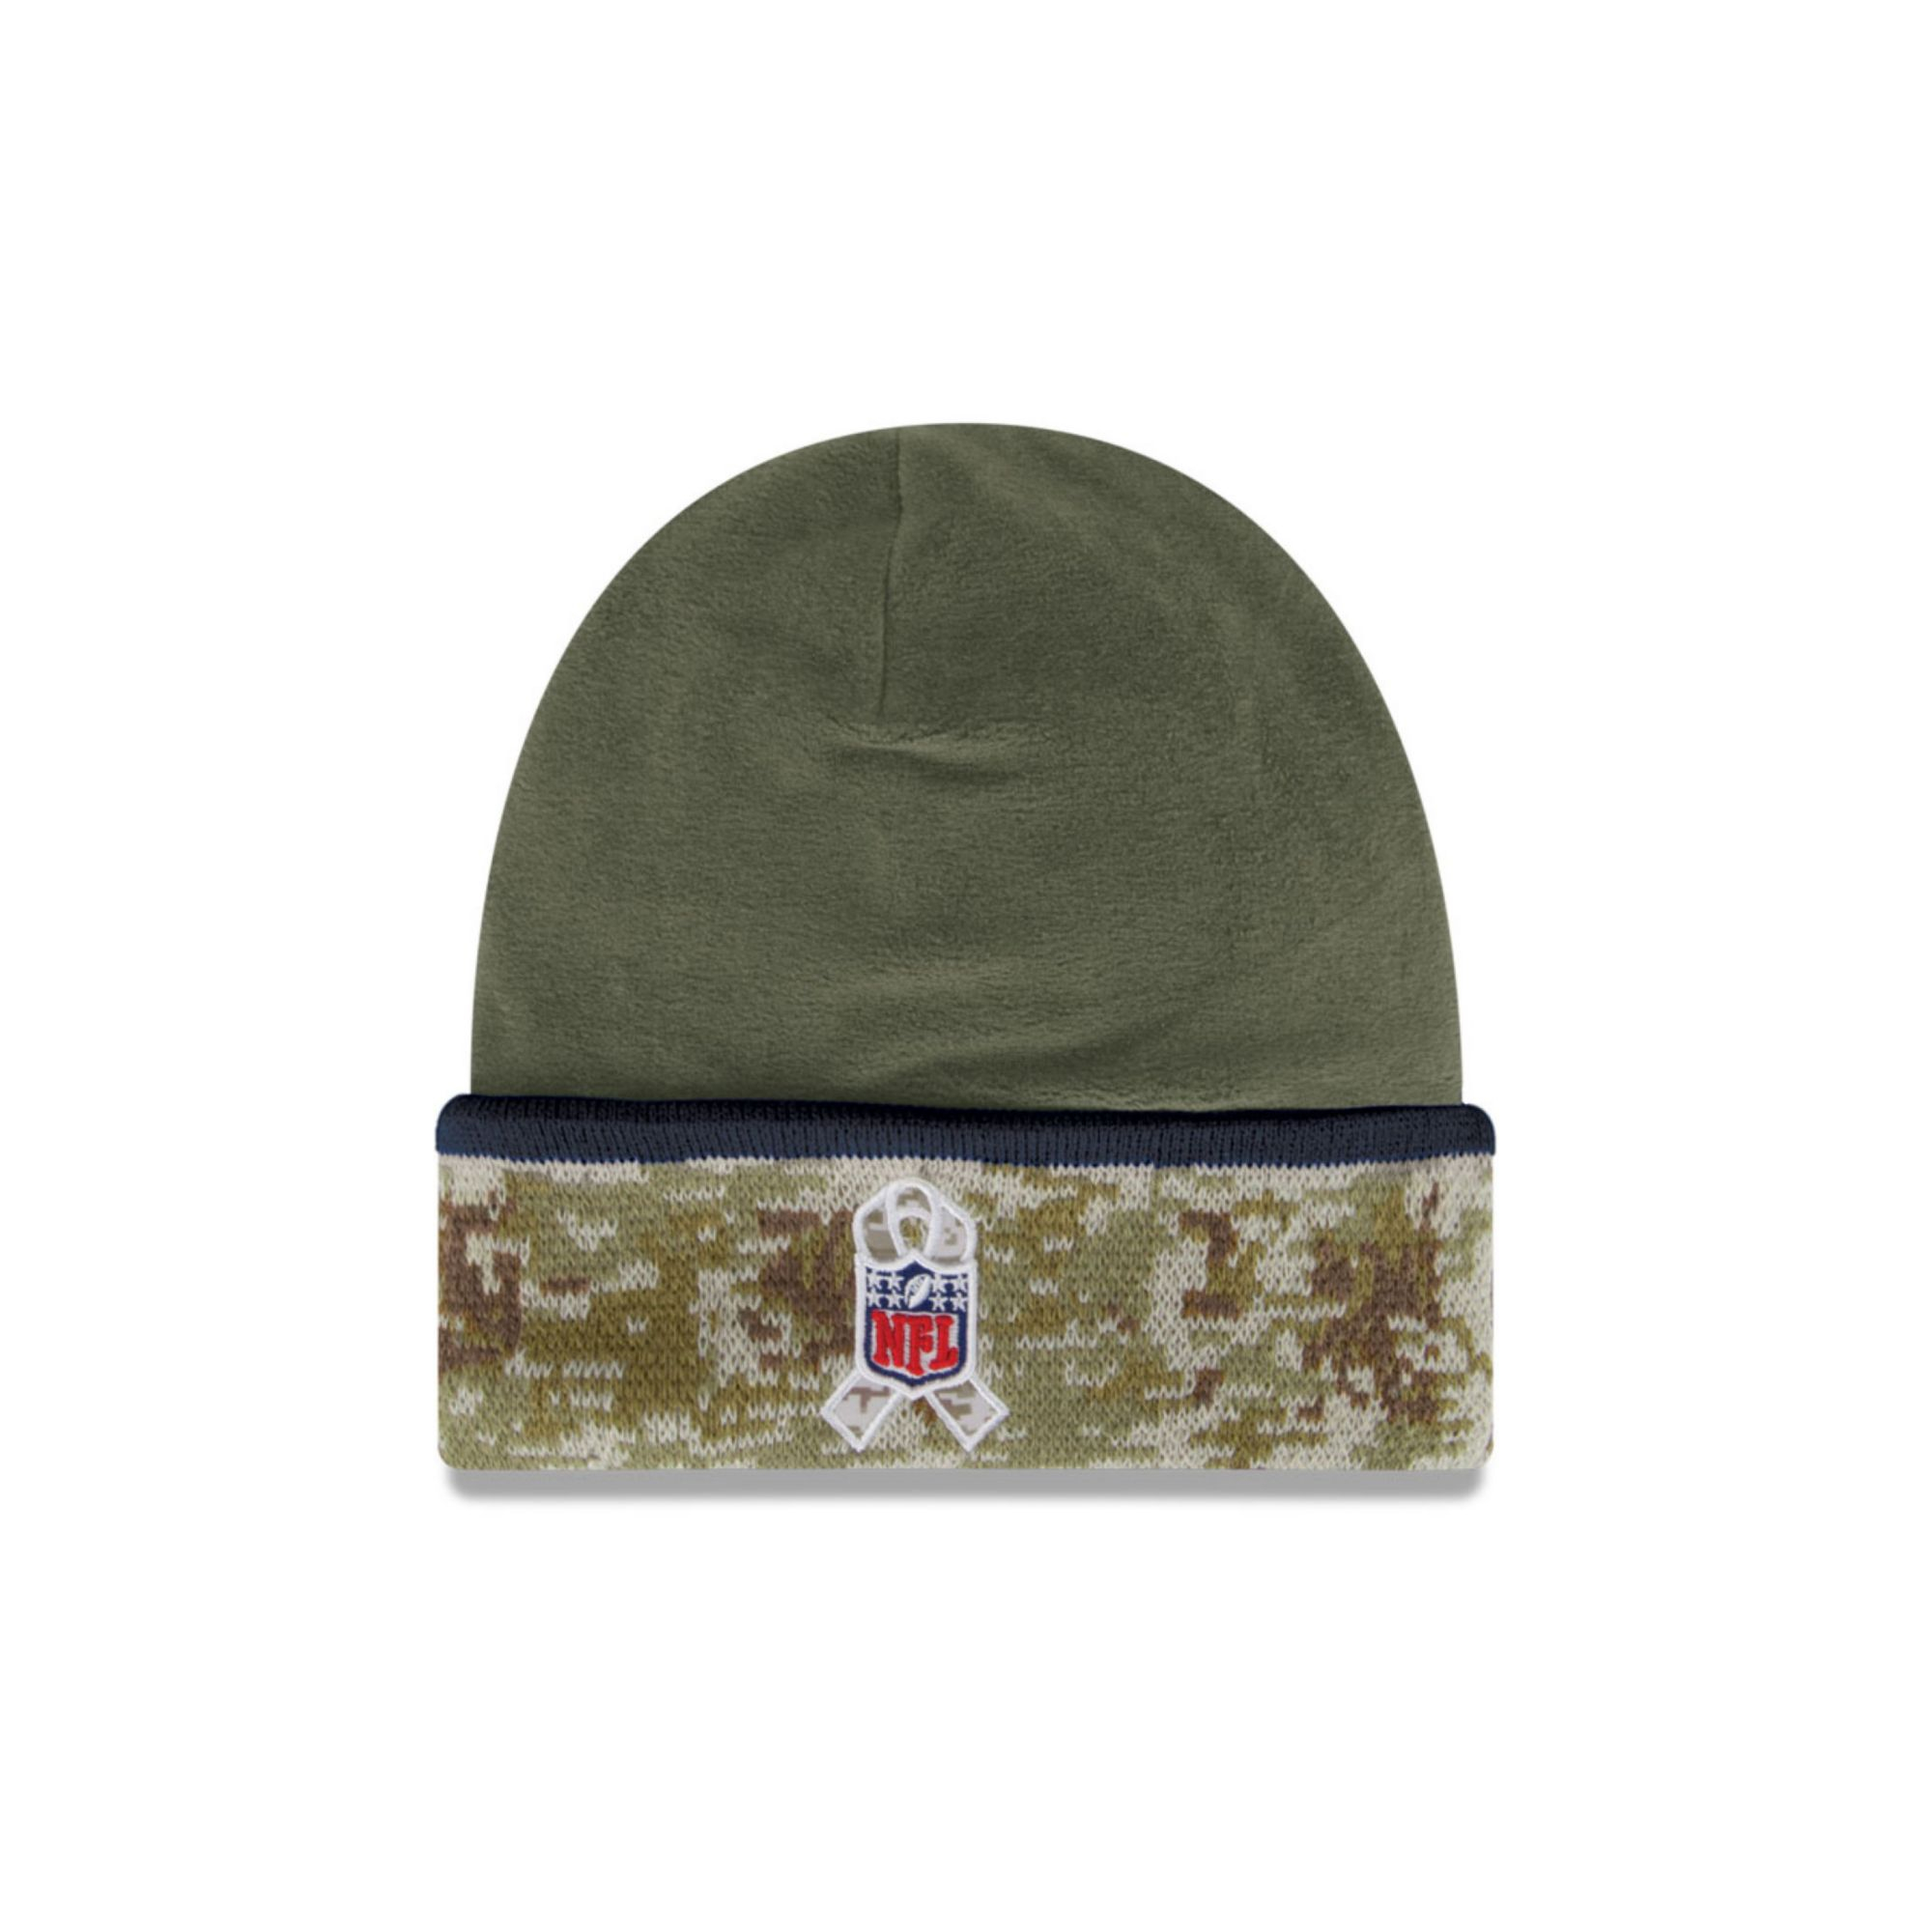 Lyst - KTZ Dallas Cowboys Salute To Service Knit Hat in Green for Men 86a6628ac